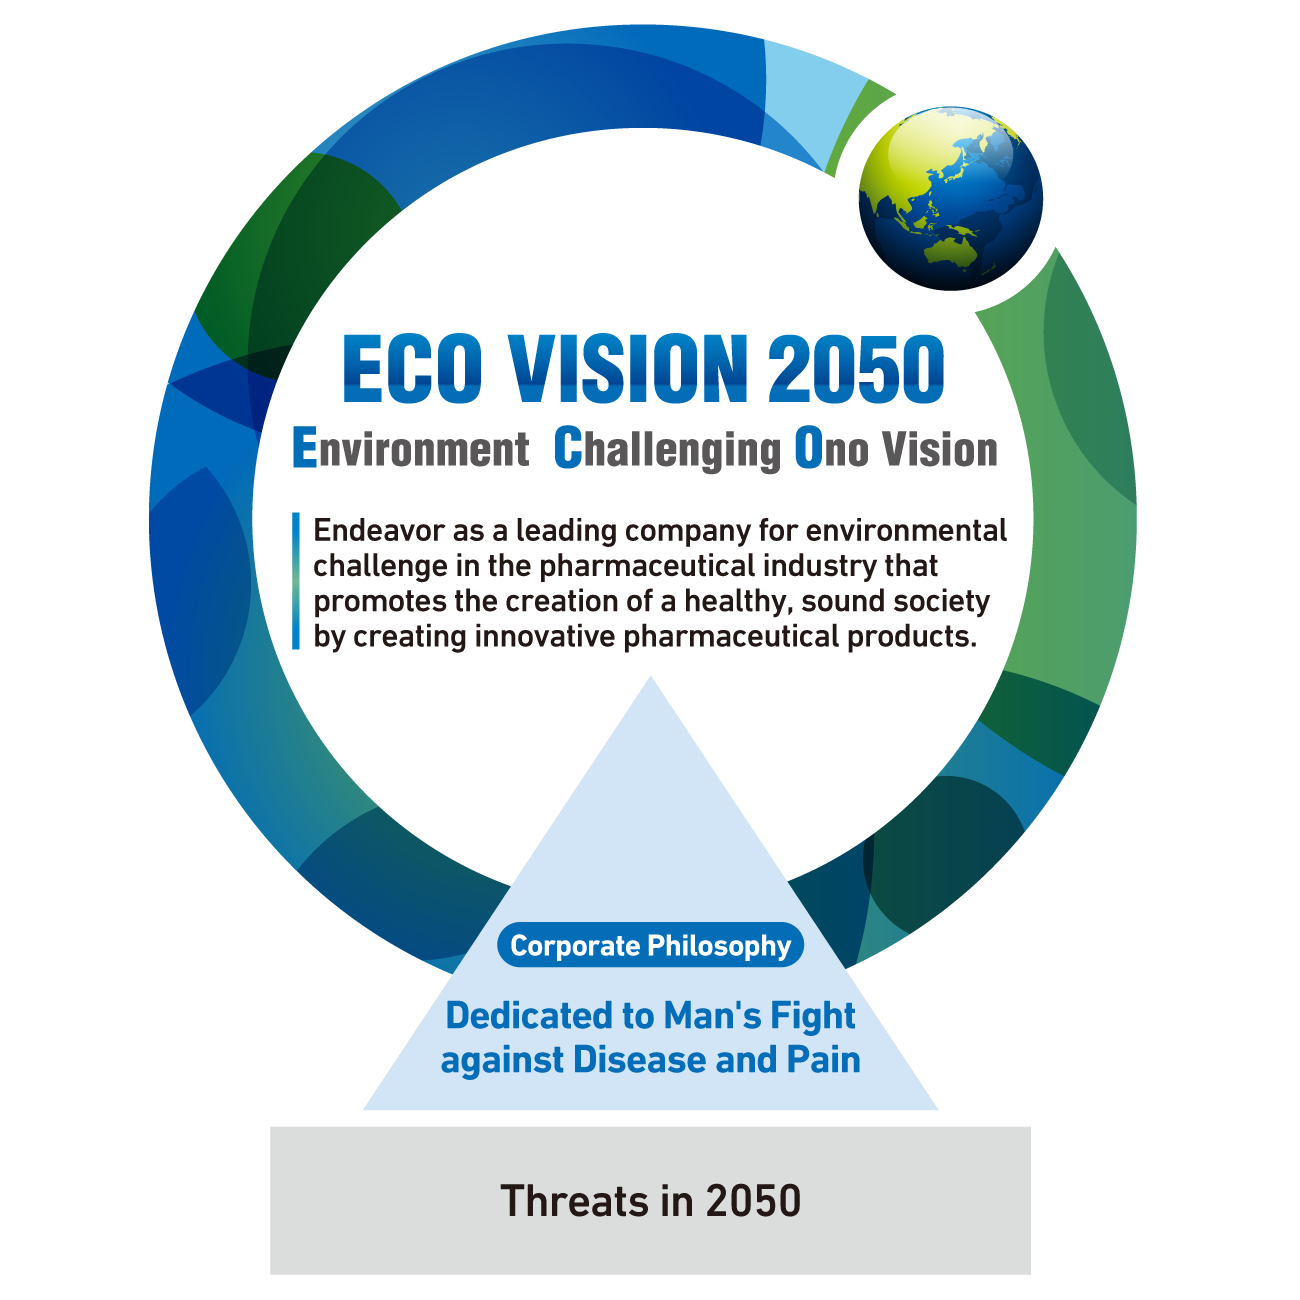 ECO VISION 2050